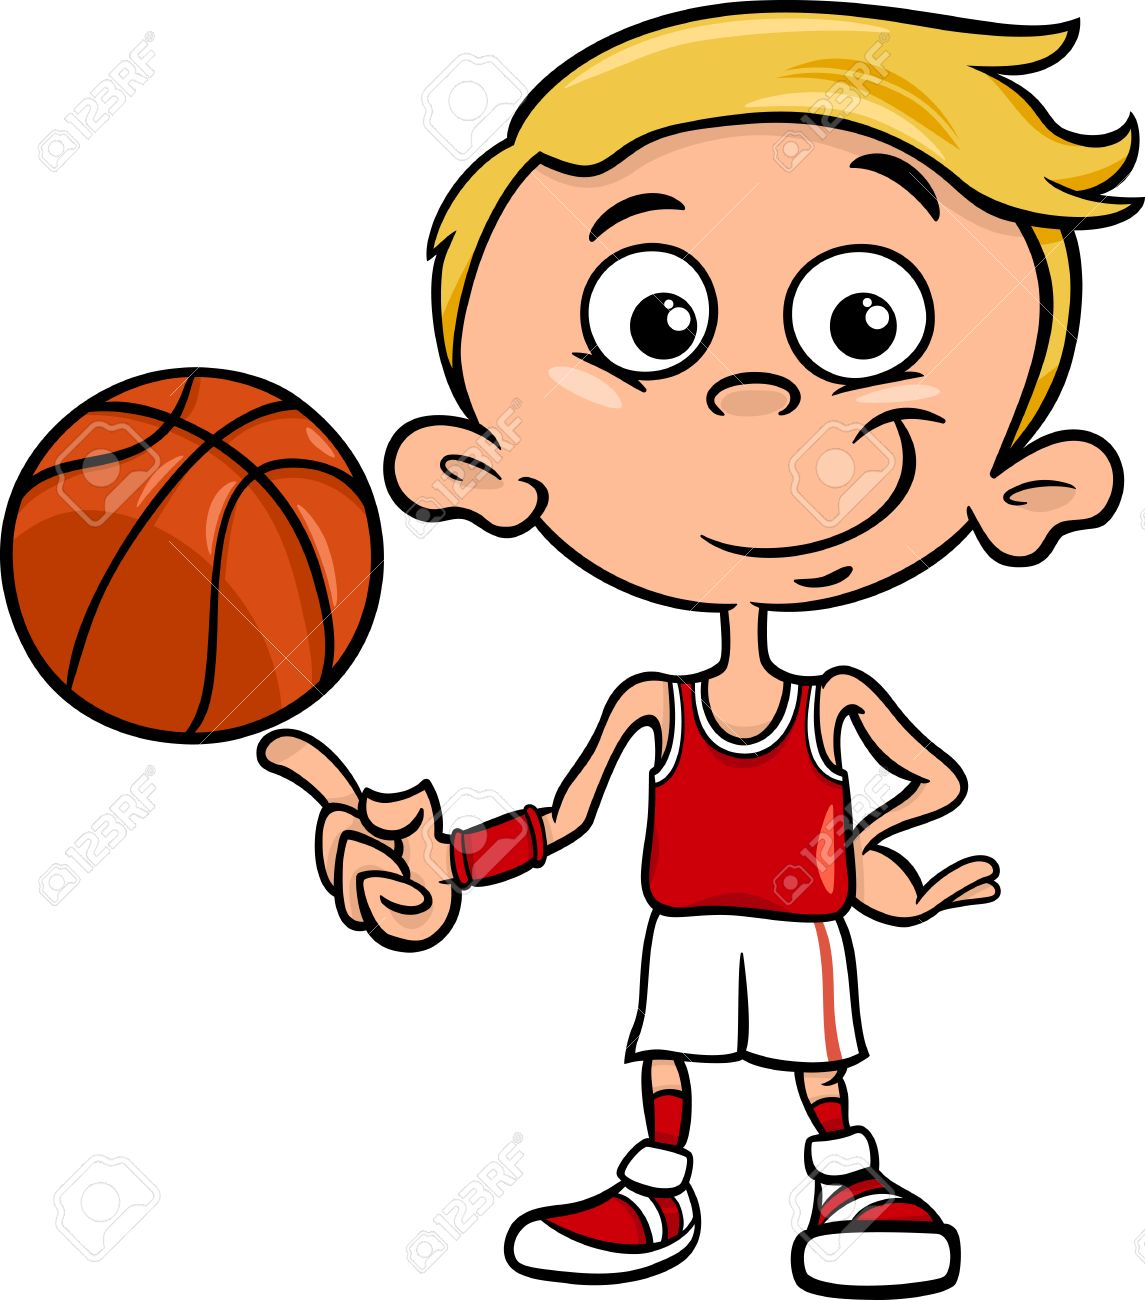 Cartoon Illustration Of Funny Boy Basketball Player With Ball Royalty Free Cliparts Vectors And Stock Illustration Image 32144072